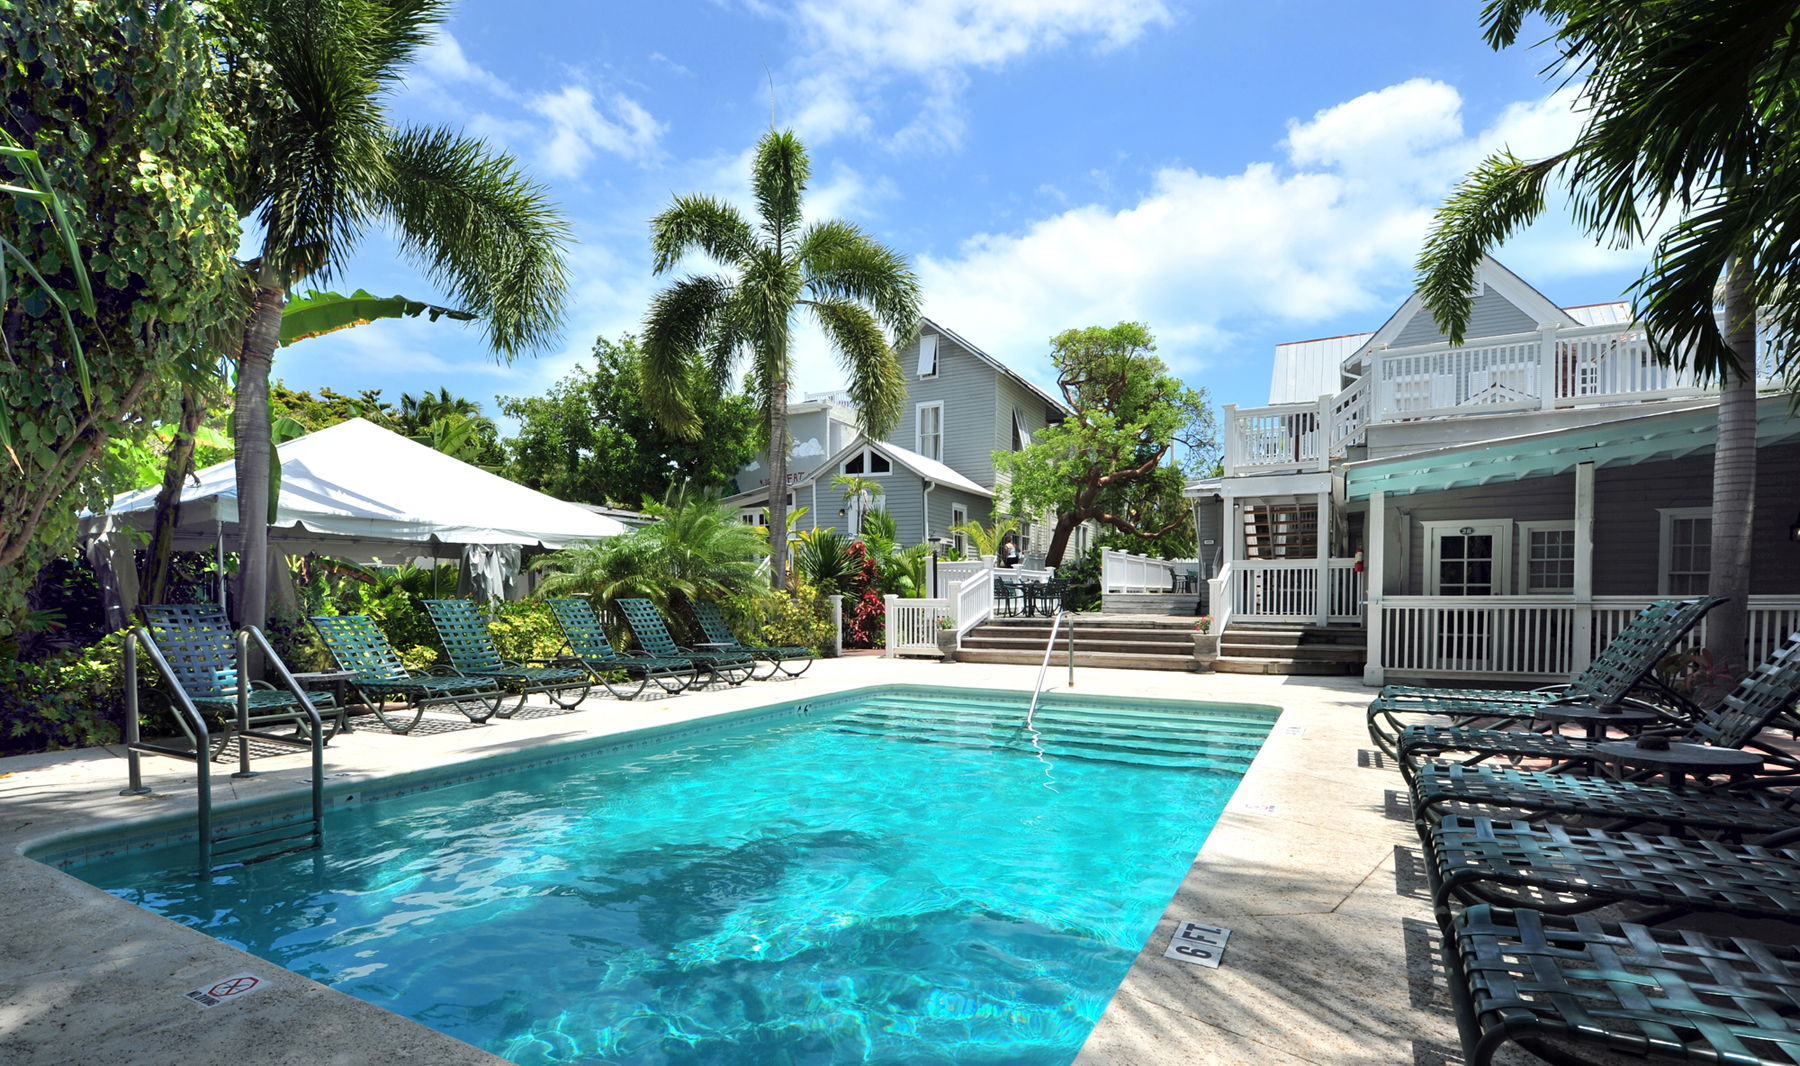 Chelsea house key west pictures